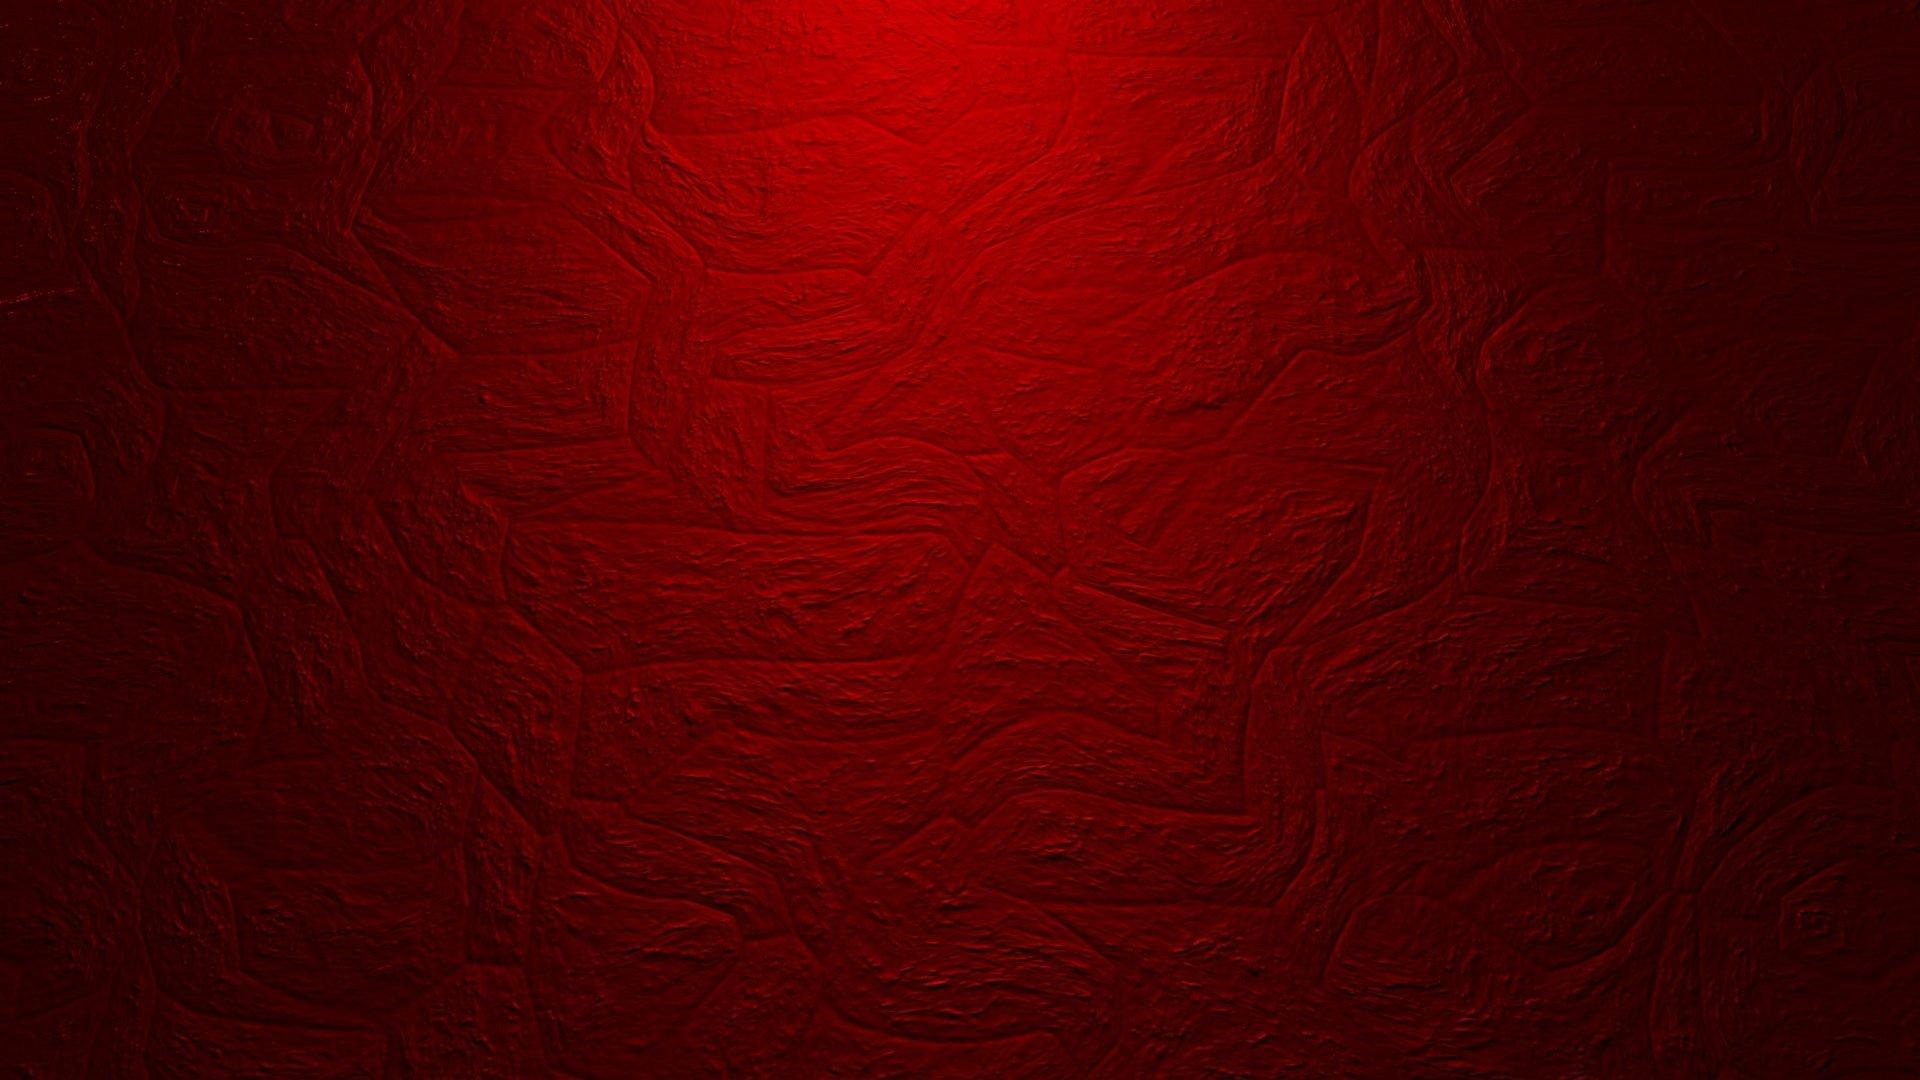 red wallpaper pictures hd images free photos 4k for android apk download red wallpaper pictures hd images free